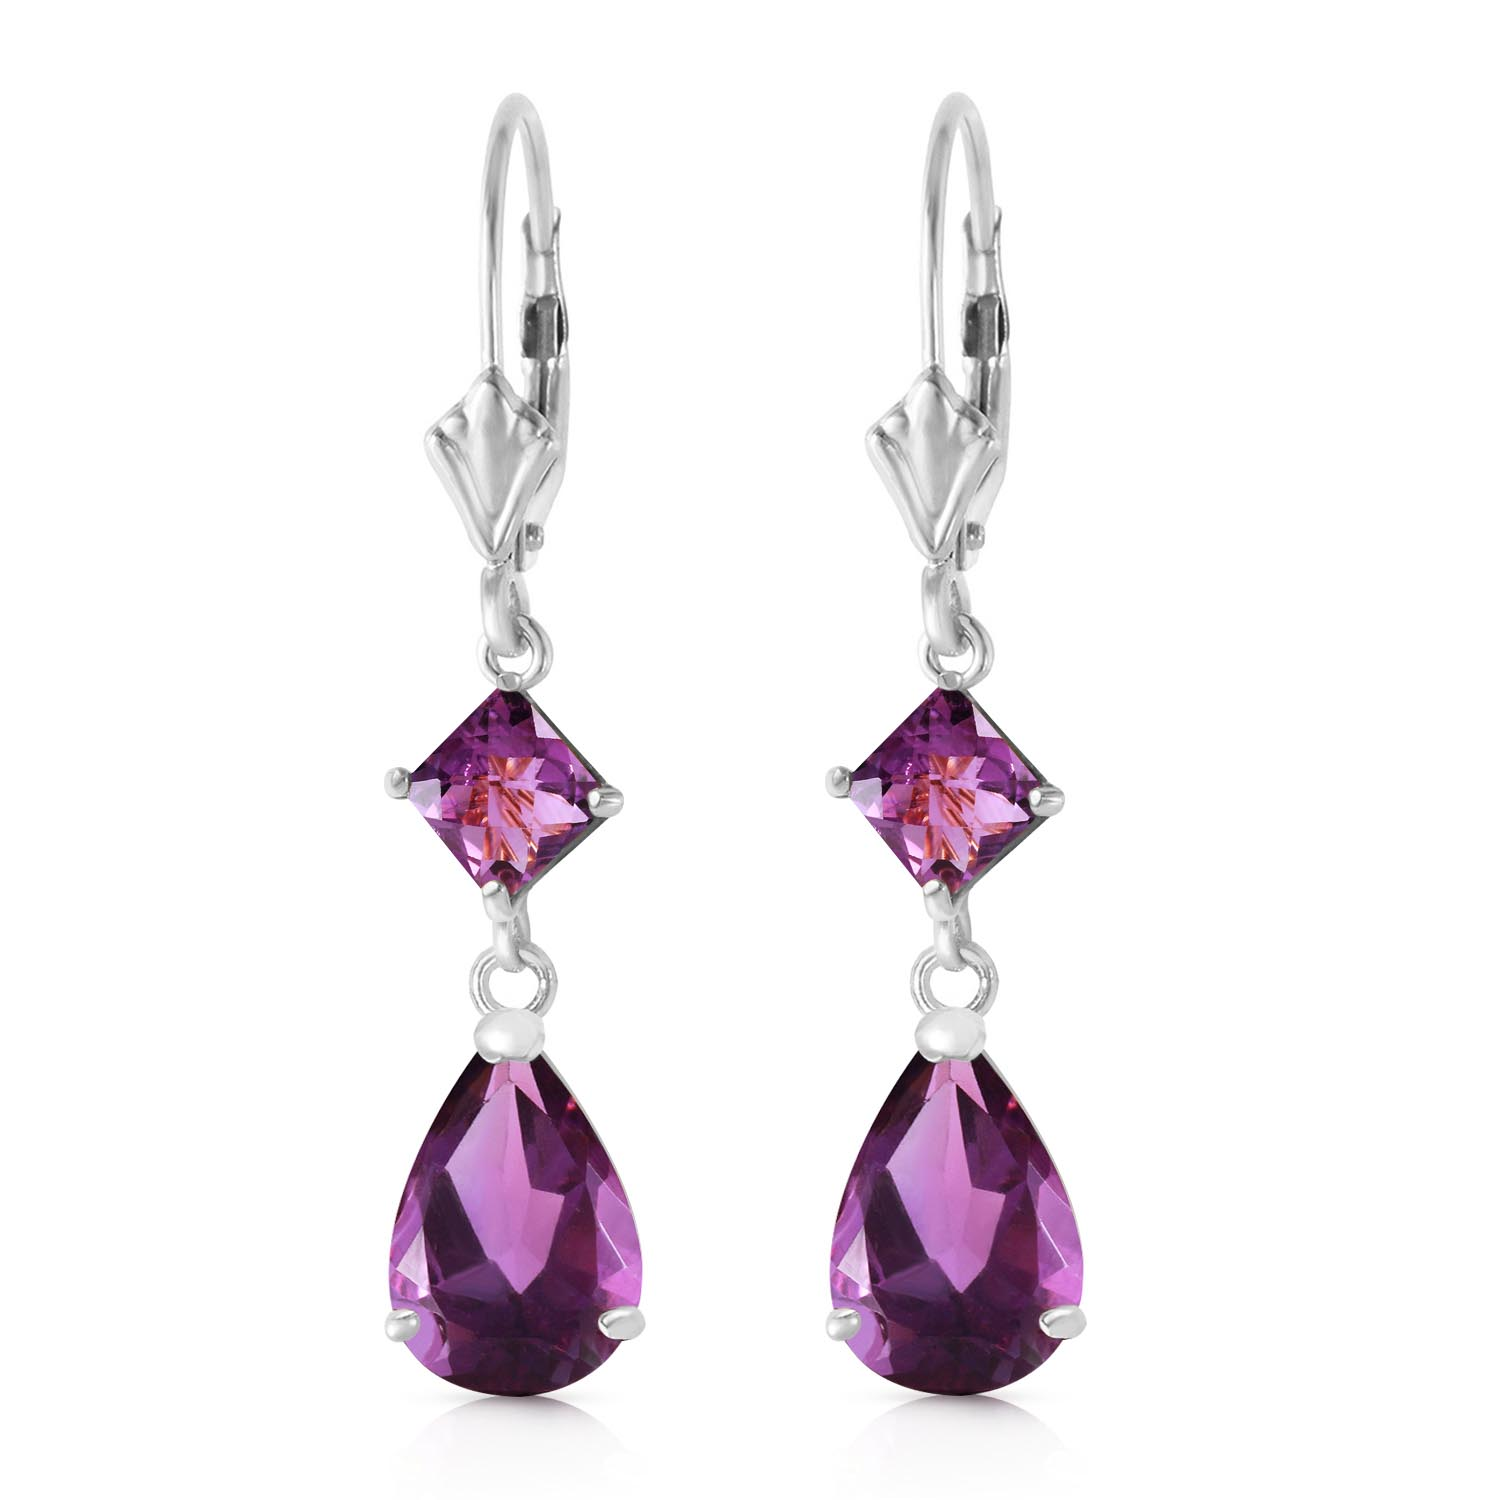 Amethyst Droplet Earrings 4.5ctw in 14K White Gold